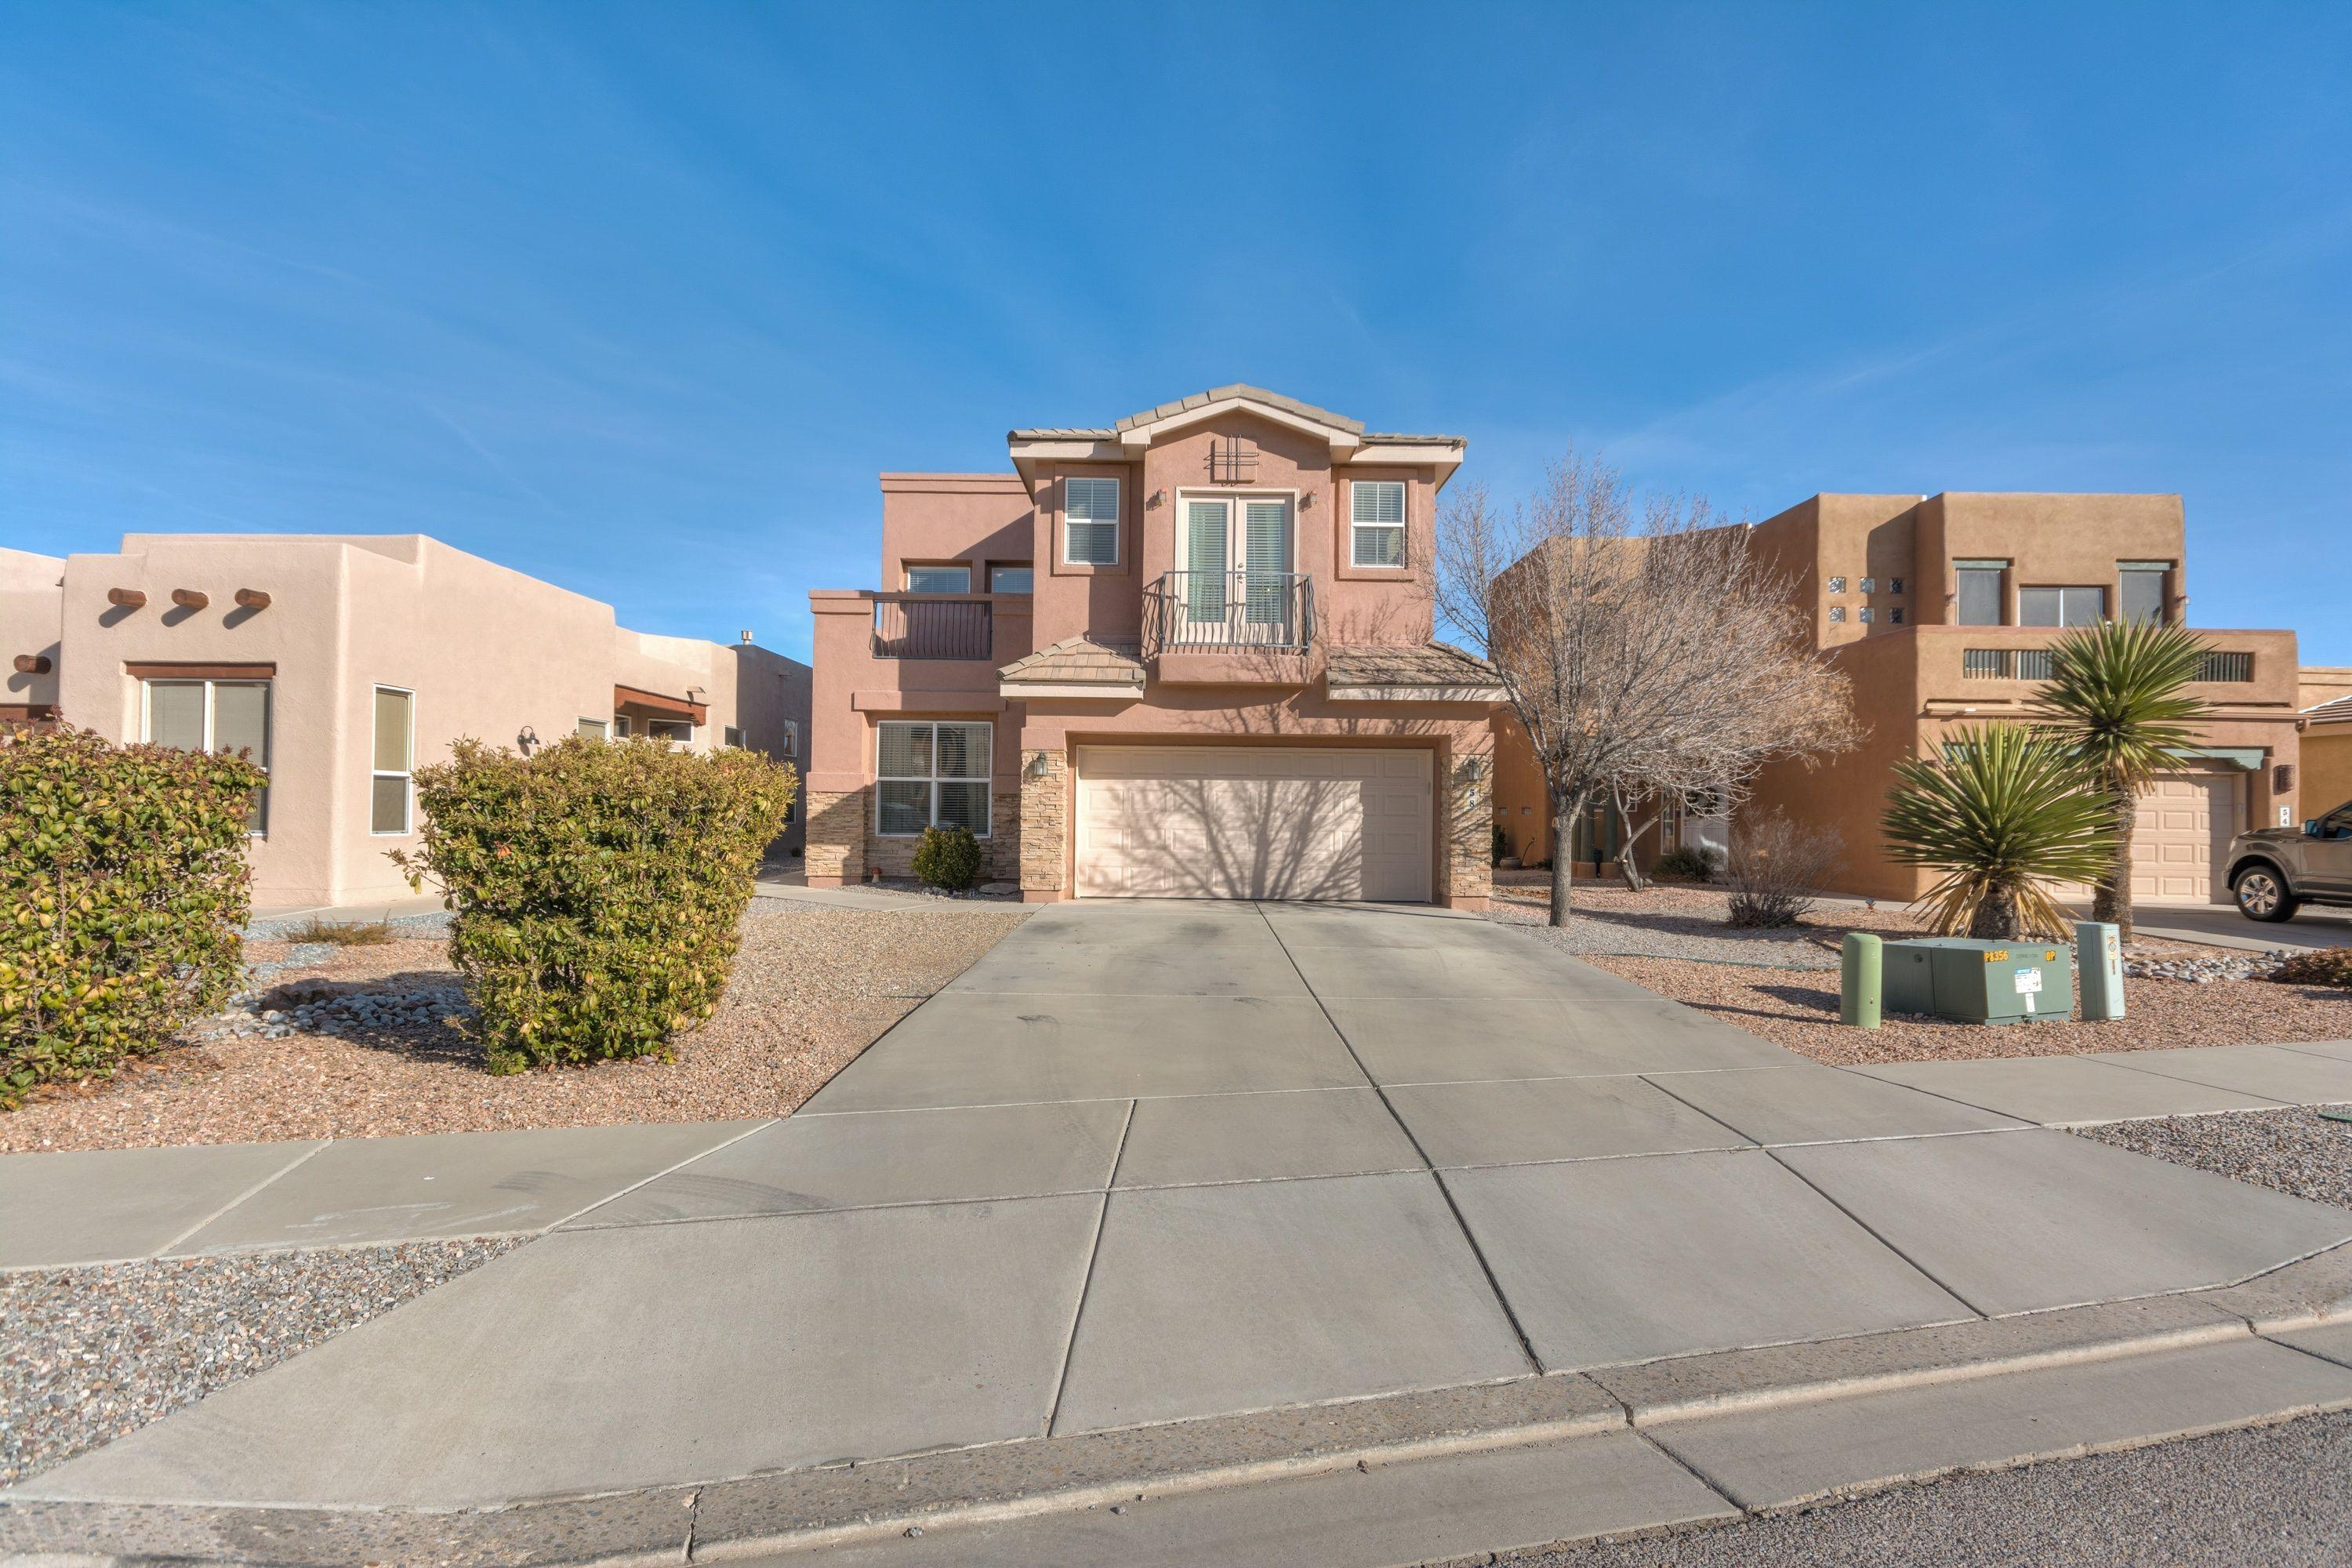 This gorgeous, well maintained home has an amazing, open floorplan! The neighborhood is quiet with shopping and a sports complex/park nearby! There are two newer refrigerated a/c units for those hot summer days! There is a bonus/flex room downstairs also! The backyard has a friendly patio and has been professionally landscaped! Please note, the sellers are unable to close until 8/1/2021.